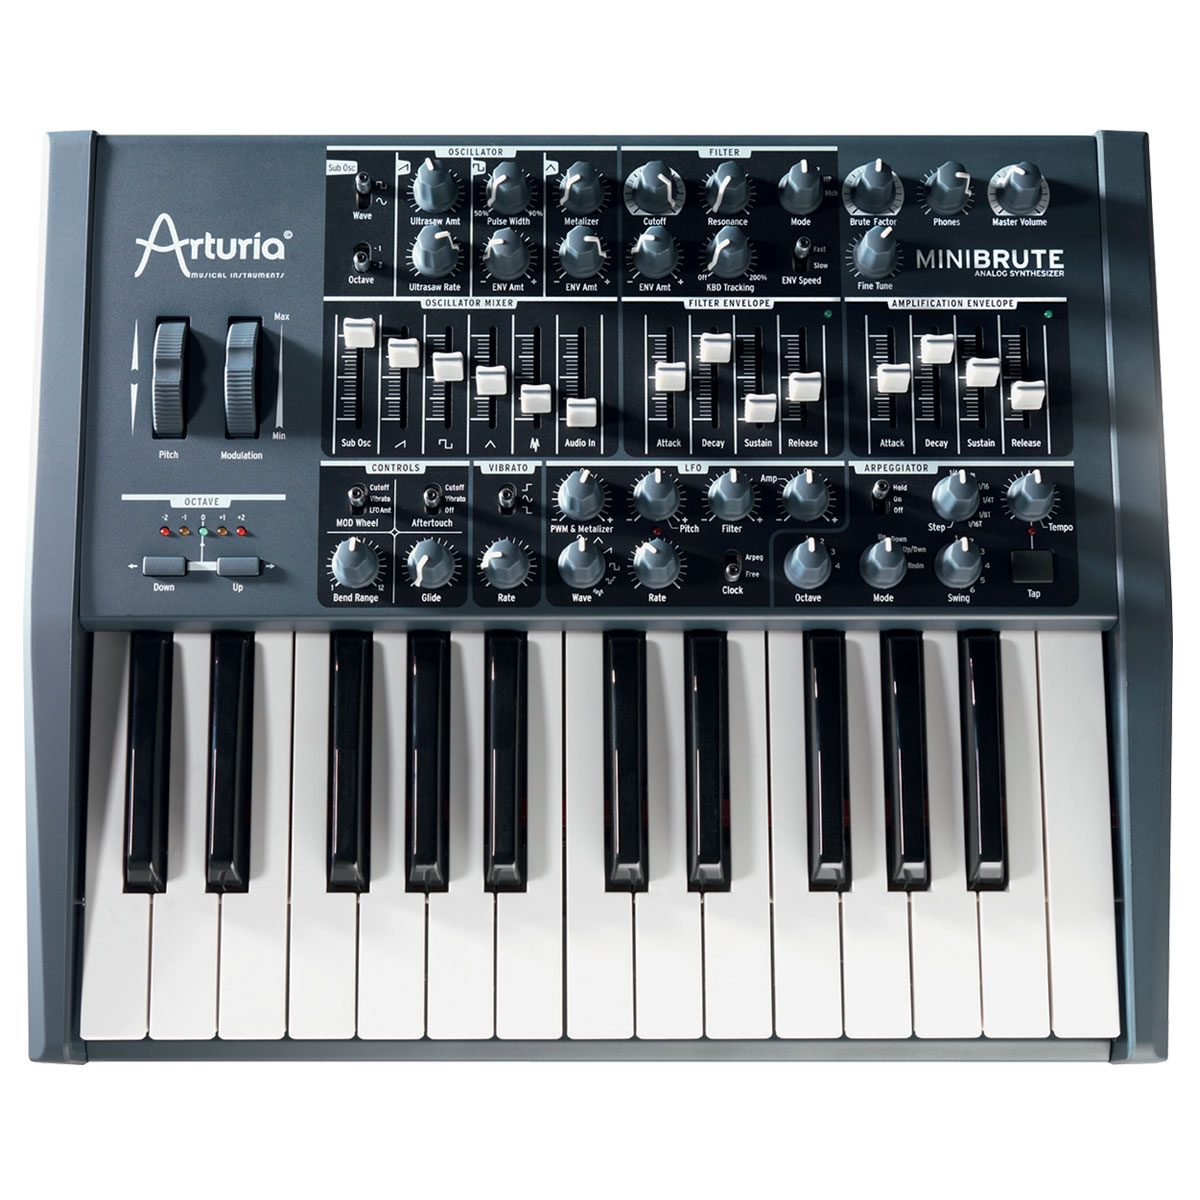 arturia minibrute clavier home studio arturia sur. Black Bedroom Furniture Sets. Home Design Ideas